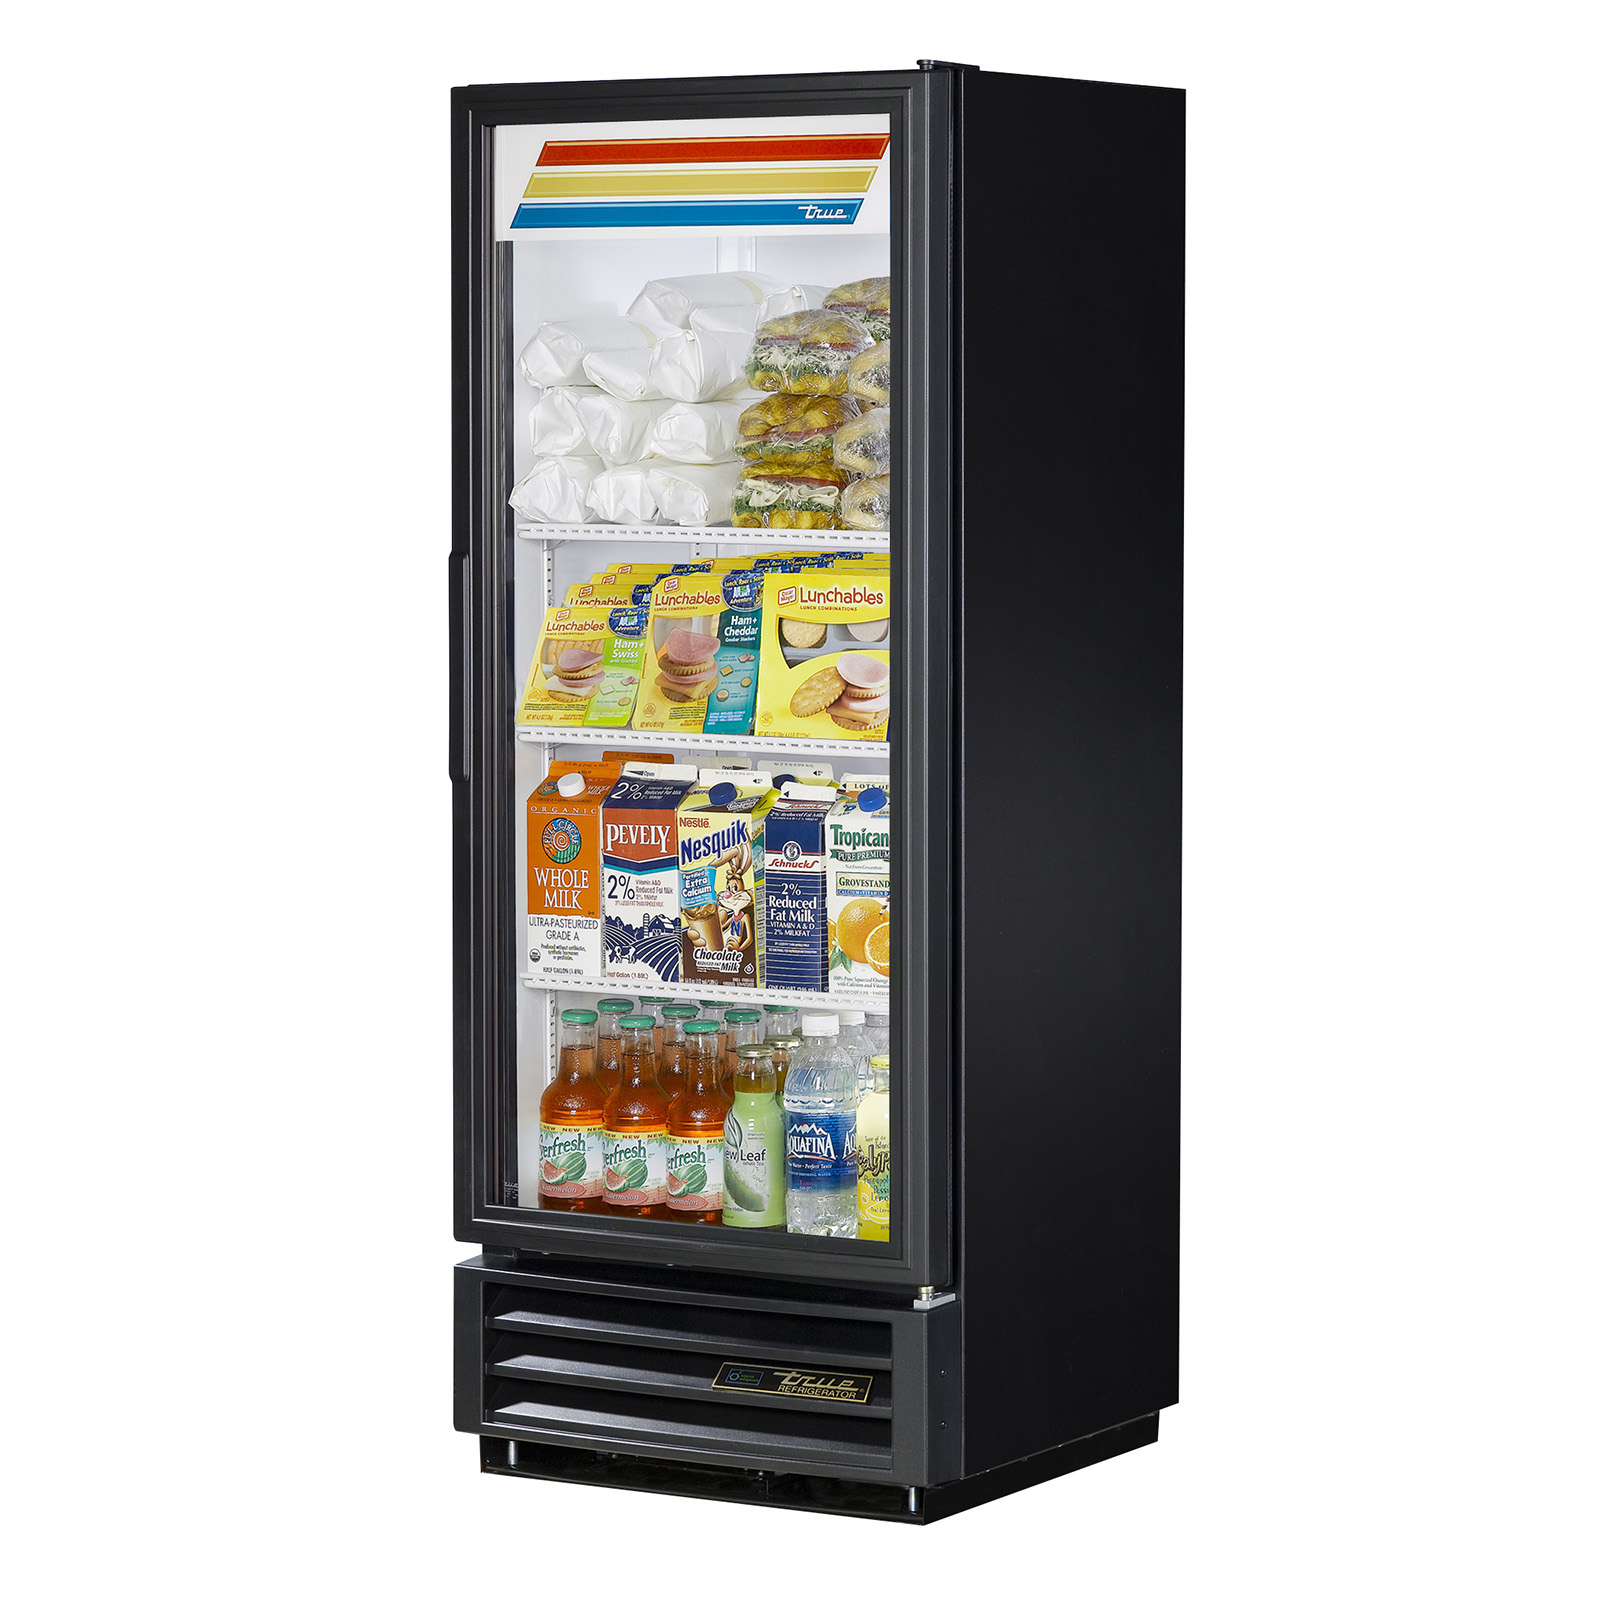 GDM-12-HC-LD True - Refrigerated Merchandiser one-section